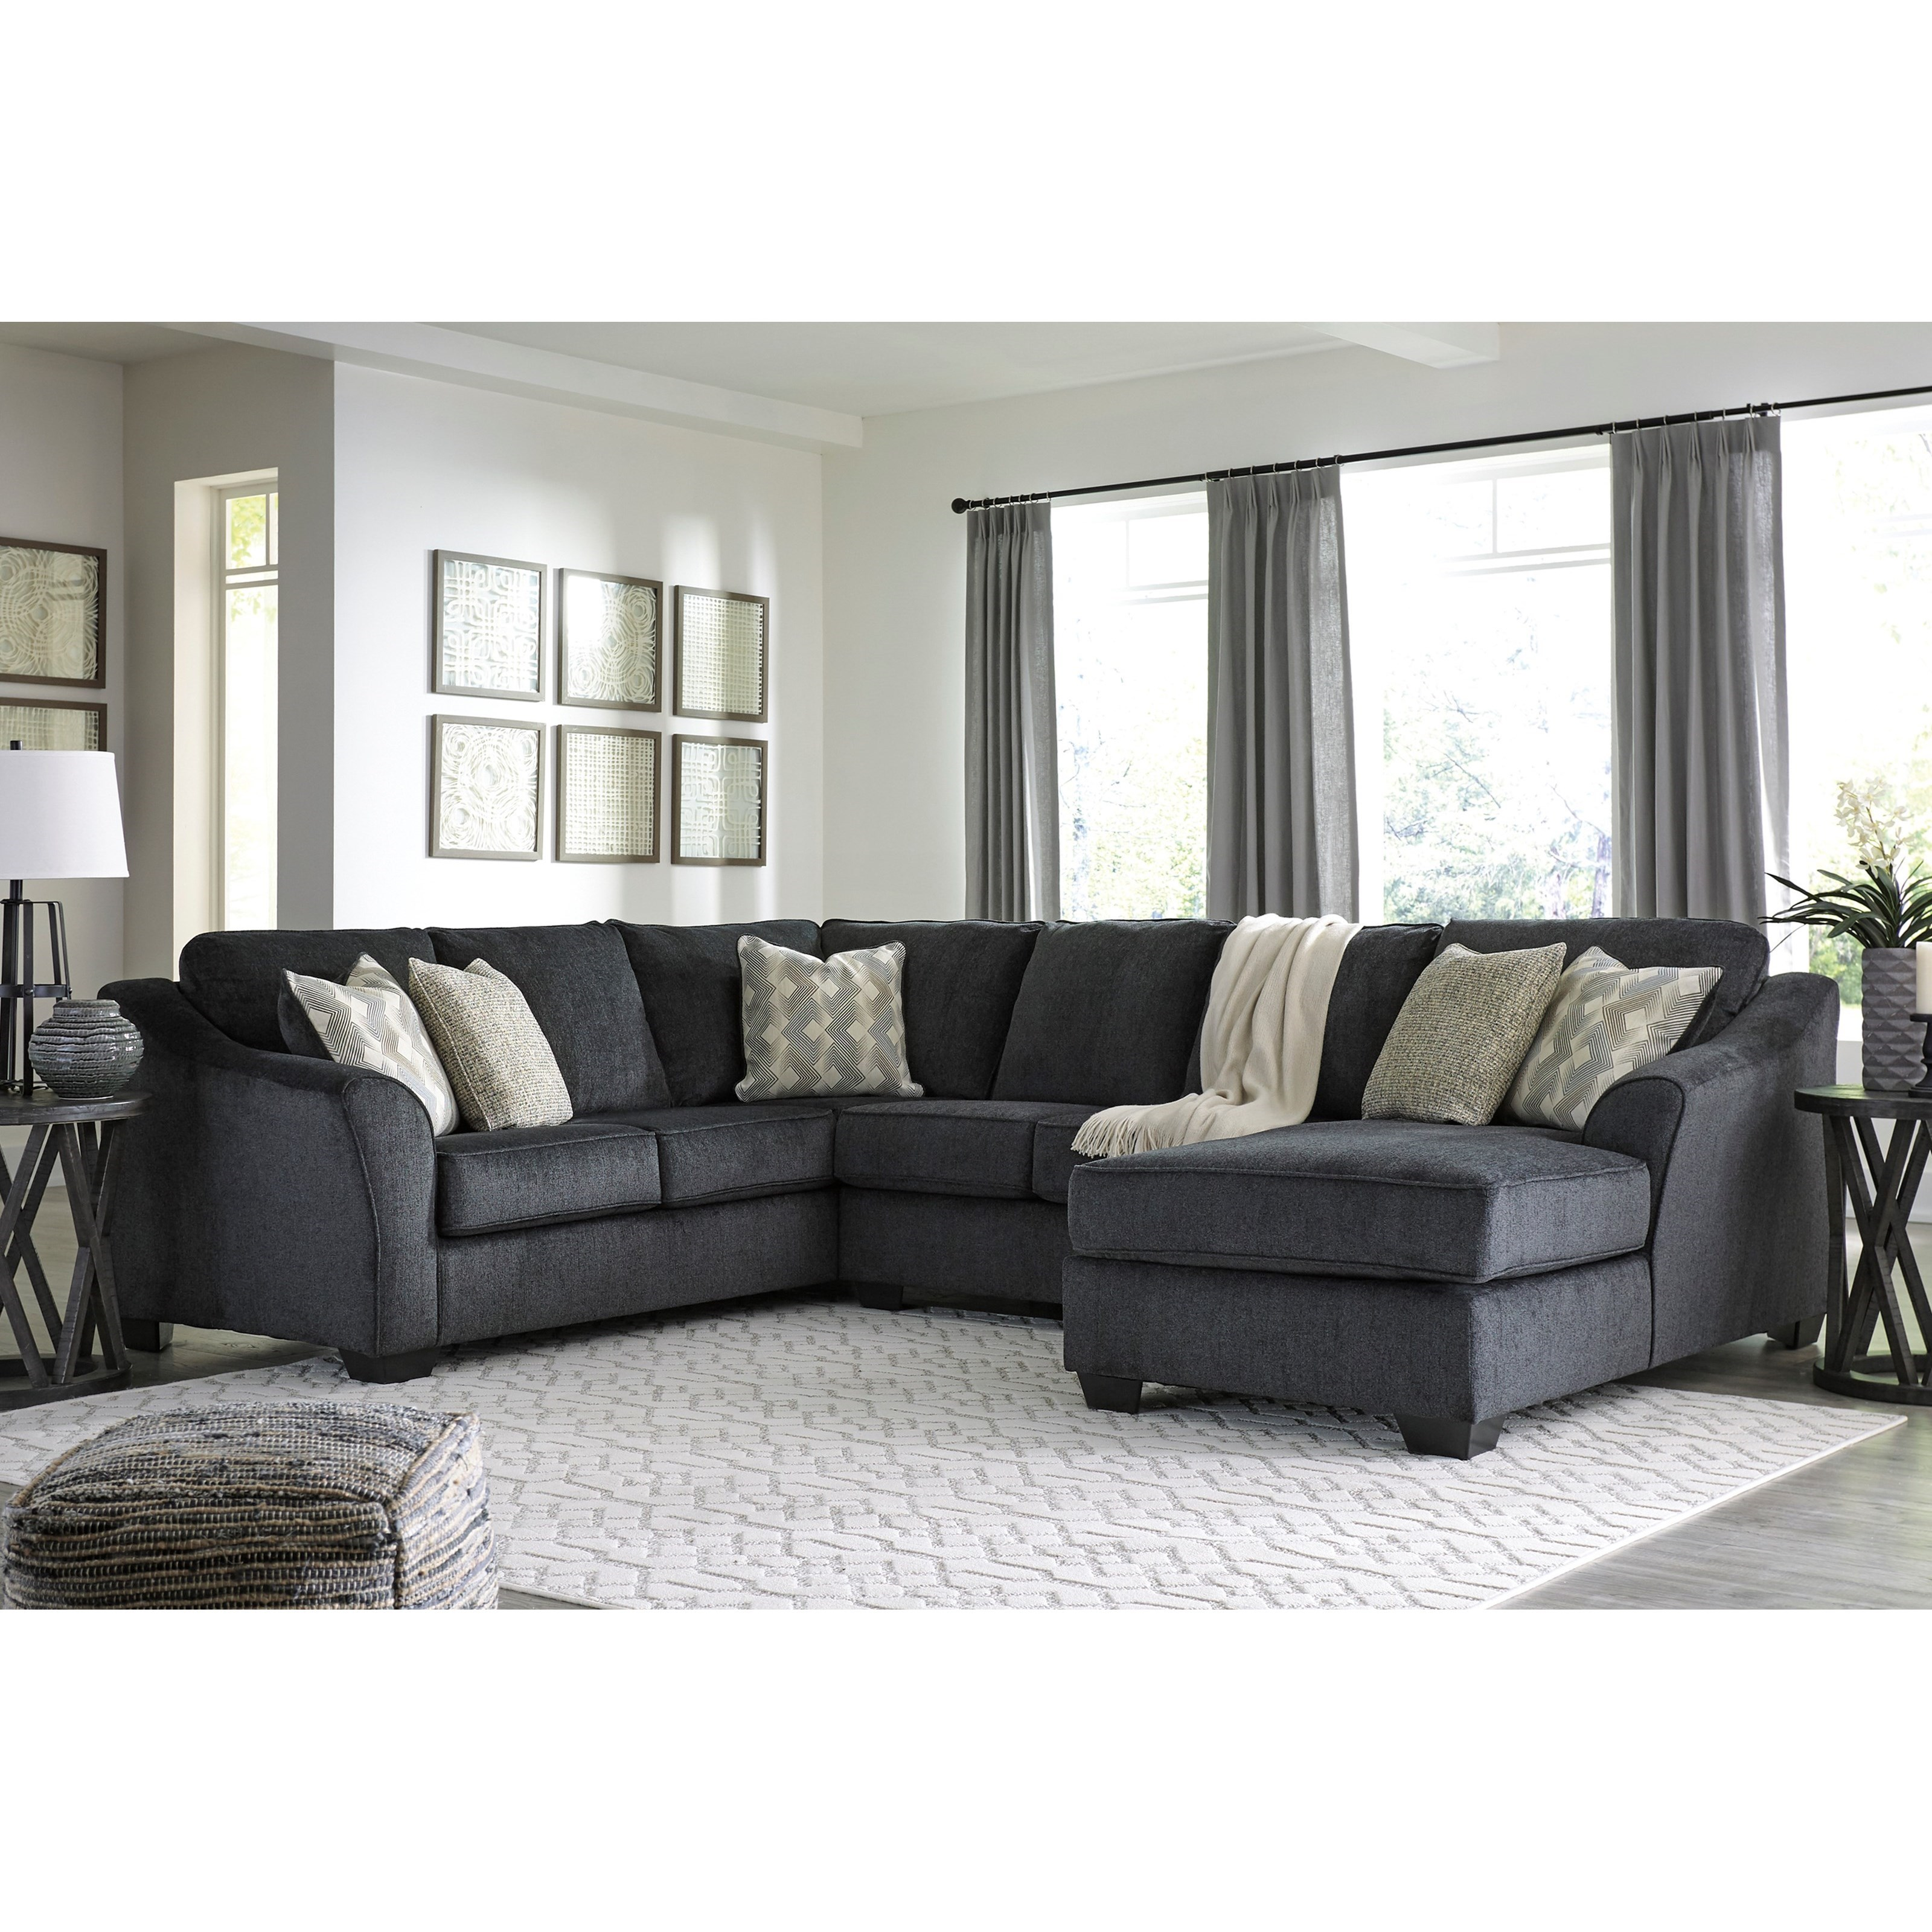 Signature Design By Ashley Eltmann 3 Piece Sectional With